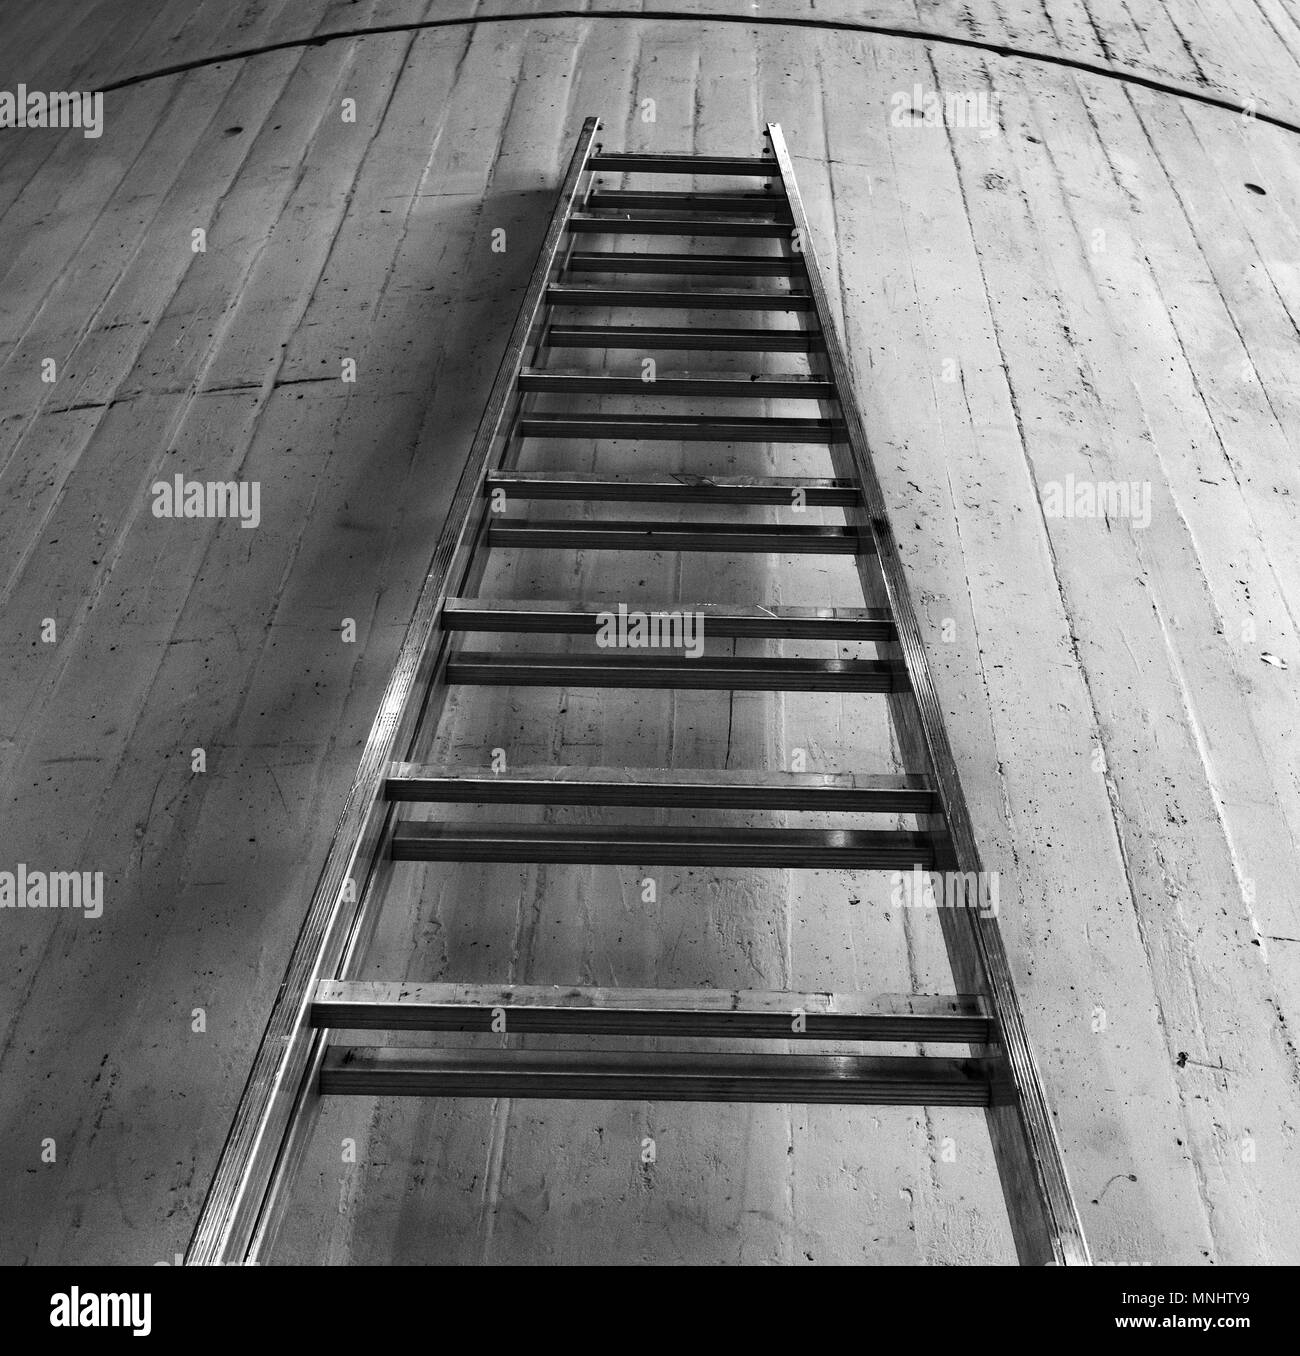 Ladder against concrete old wall - Stock Image